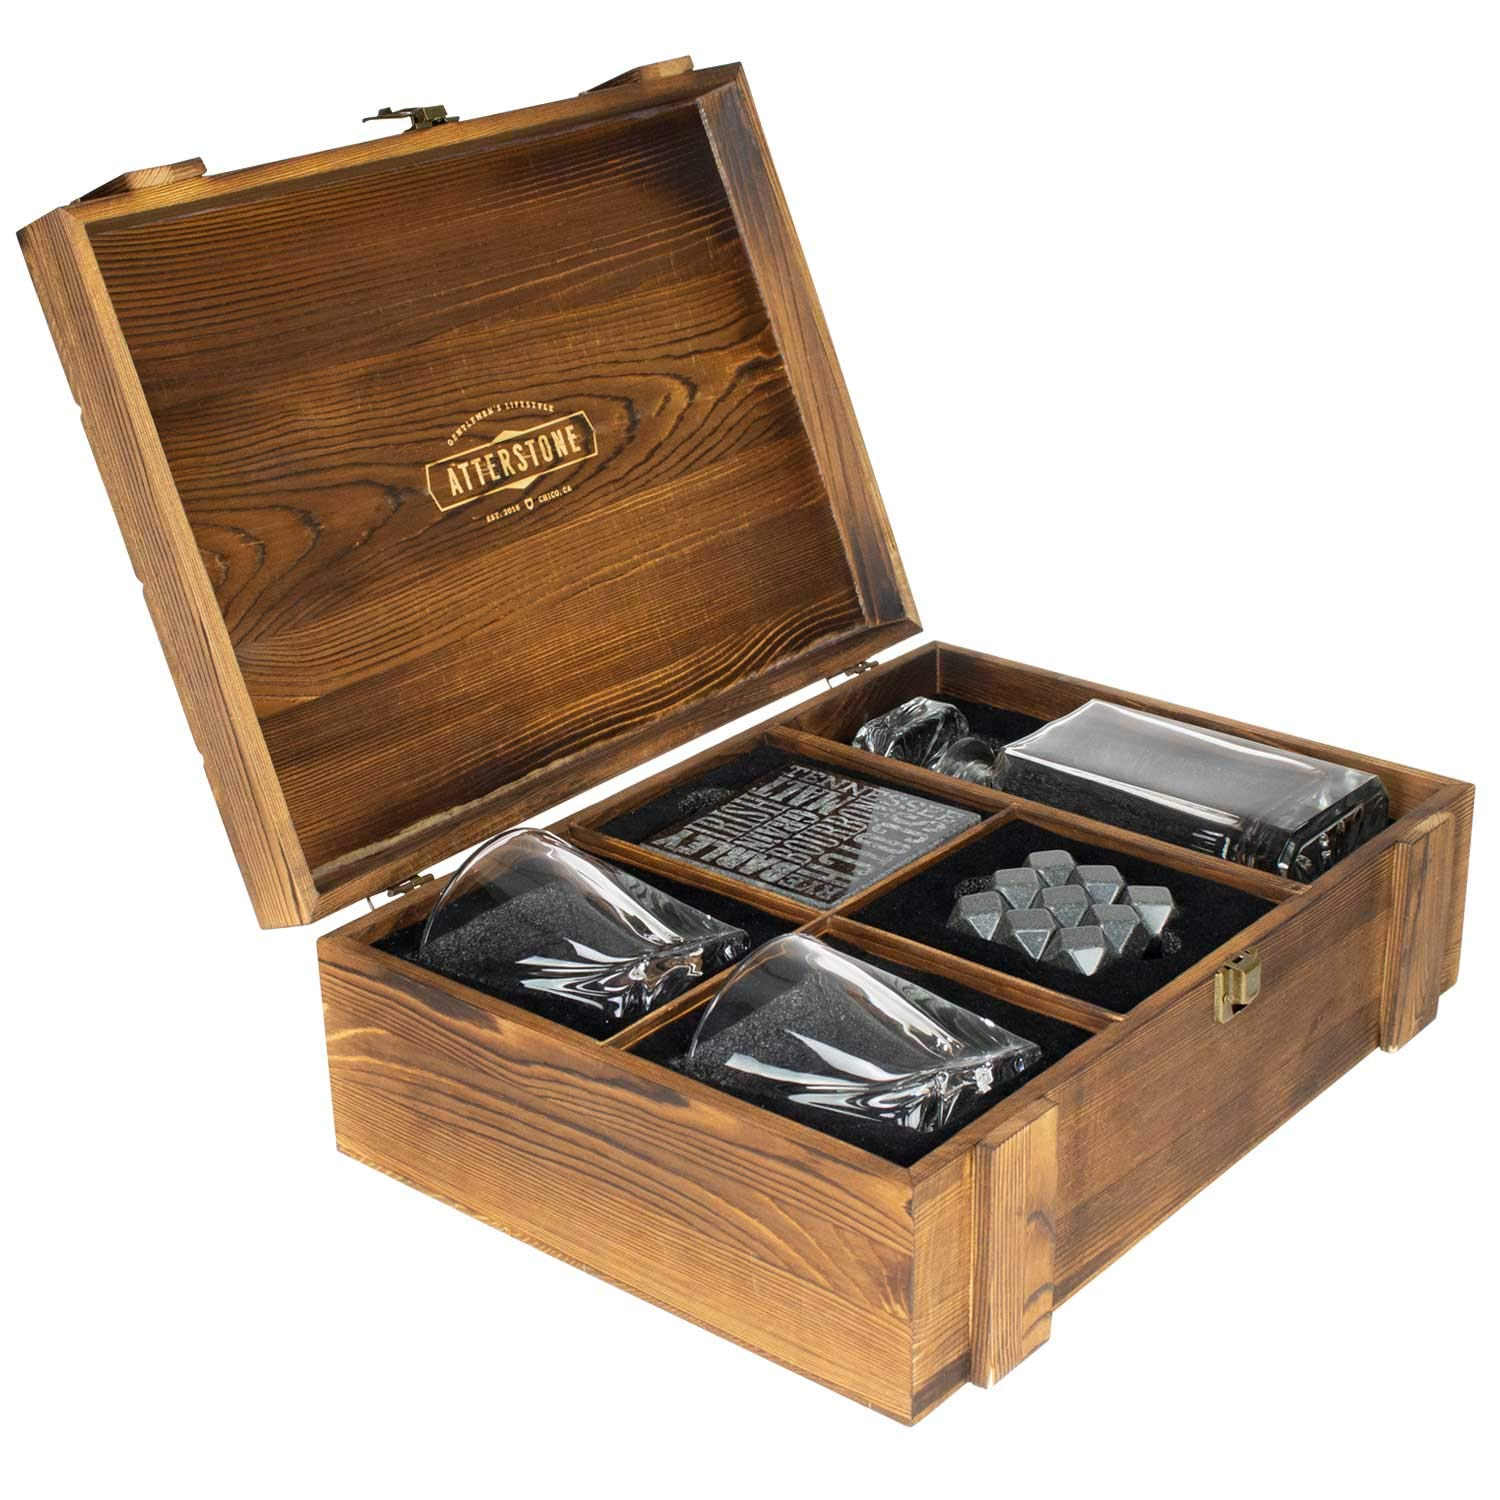 Atterstone Crate Whiskey Box Set with Premium Decanter and 2 Swirl Glasses, Includes 9 Chilling Stones and 2 Dark Stone Coasters, Encased in Polished Wood Box Great for Holiday and Wedding Gifts by Atterstone (Image #3)